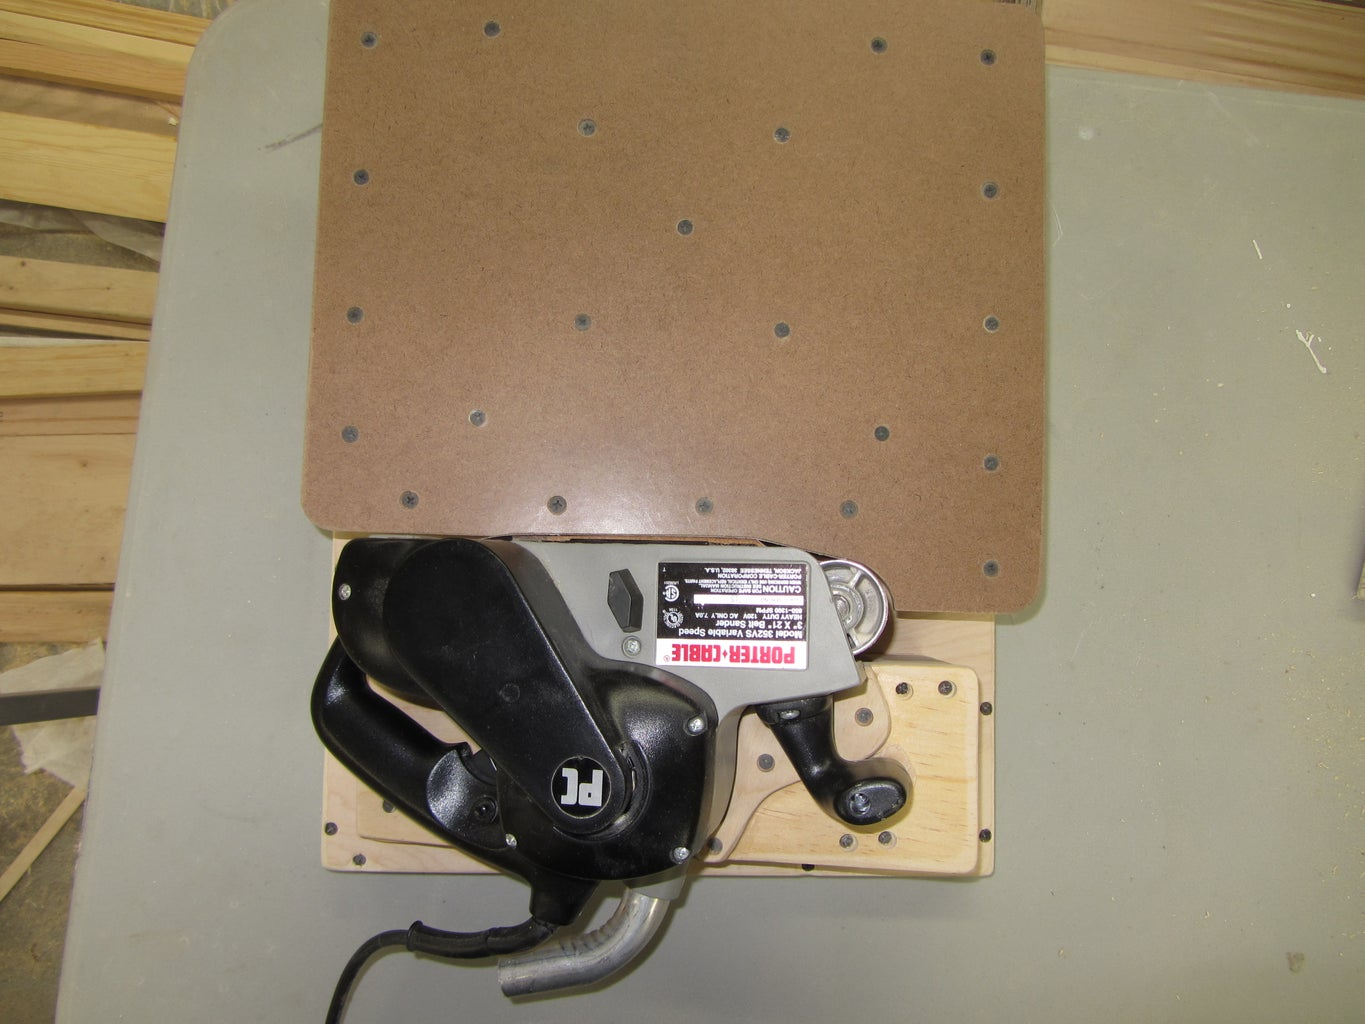 Build a Support Plate for Your Sander